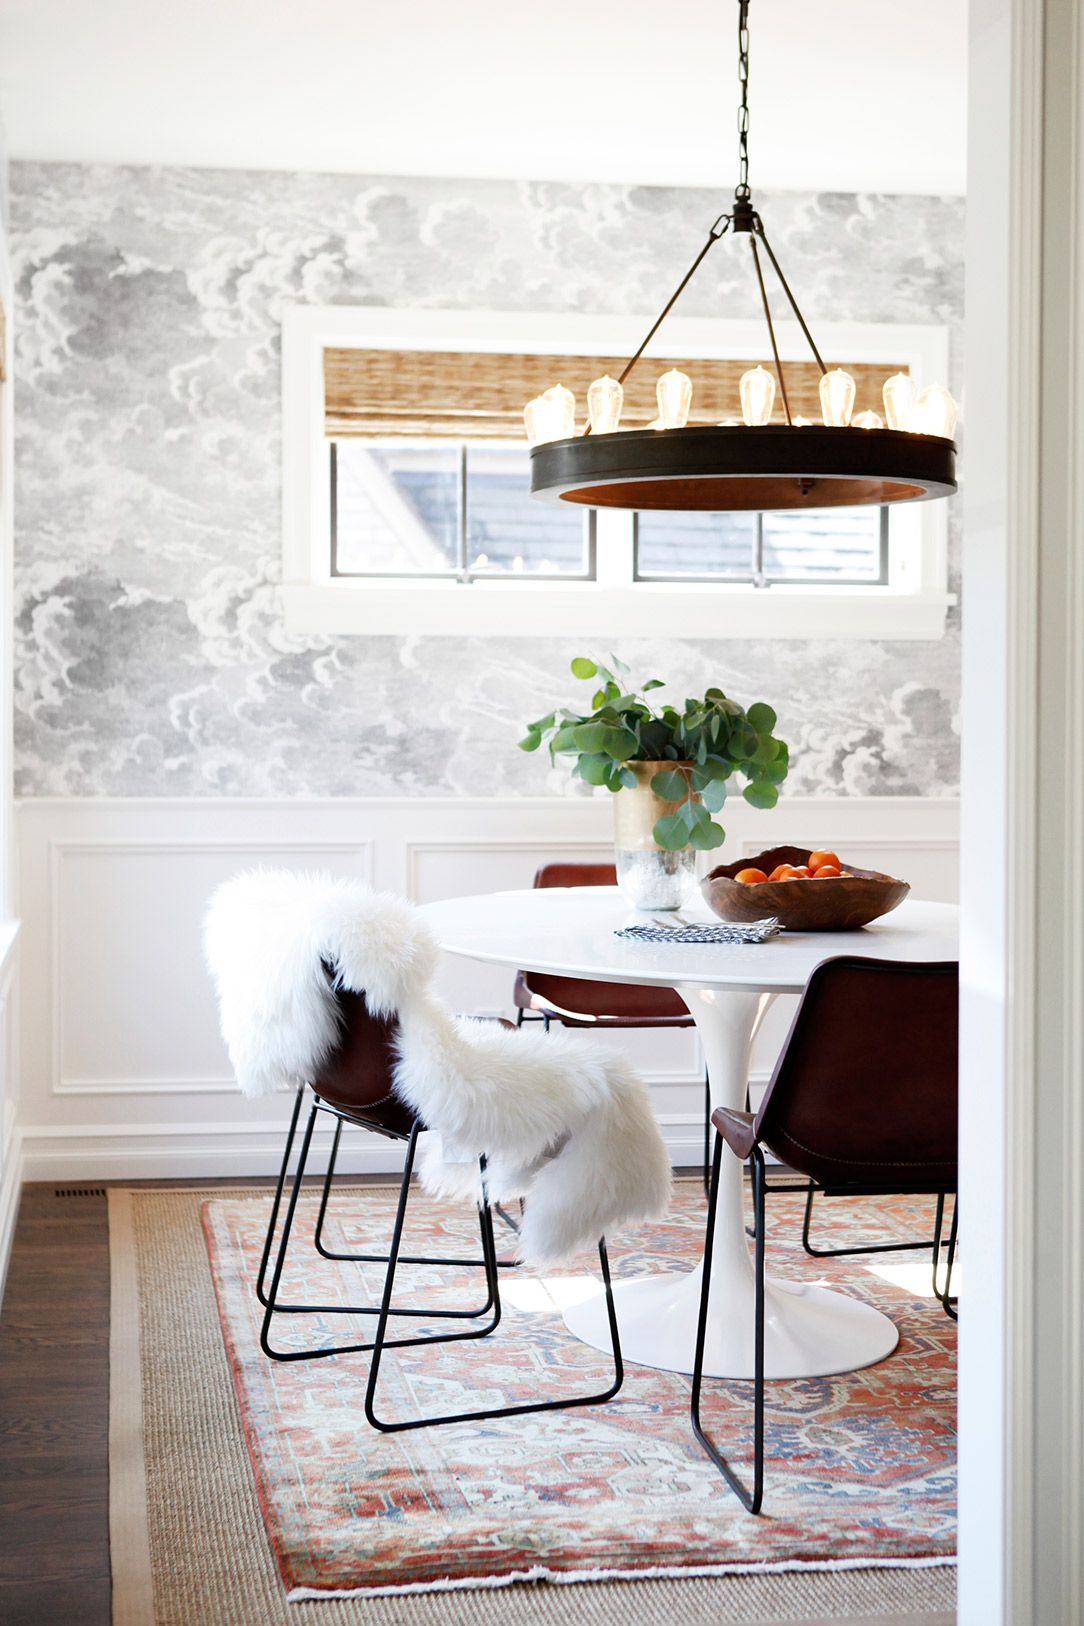 Modern Dining E With Sheepskin Rug On Black Chairs And Chandelier Exposed Light Bulbs